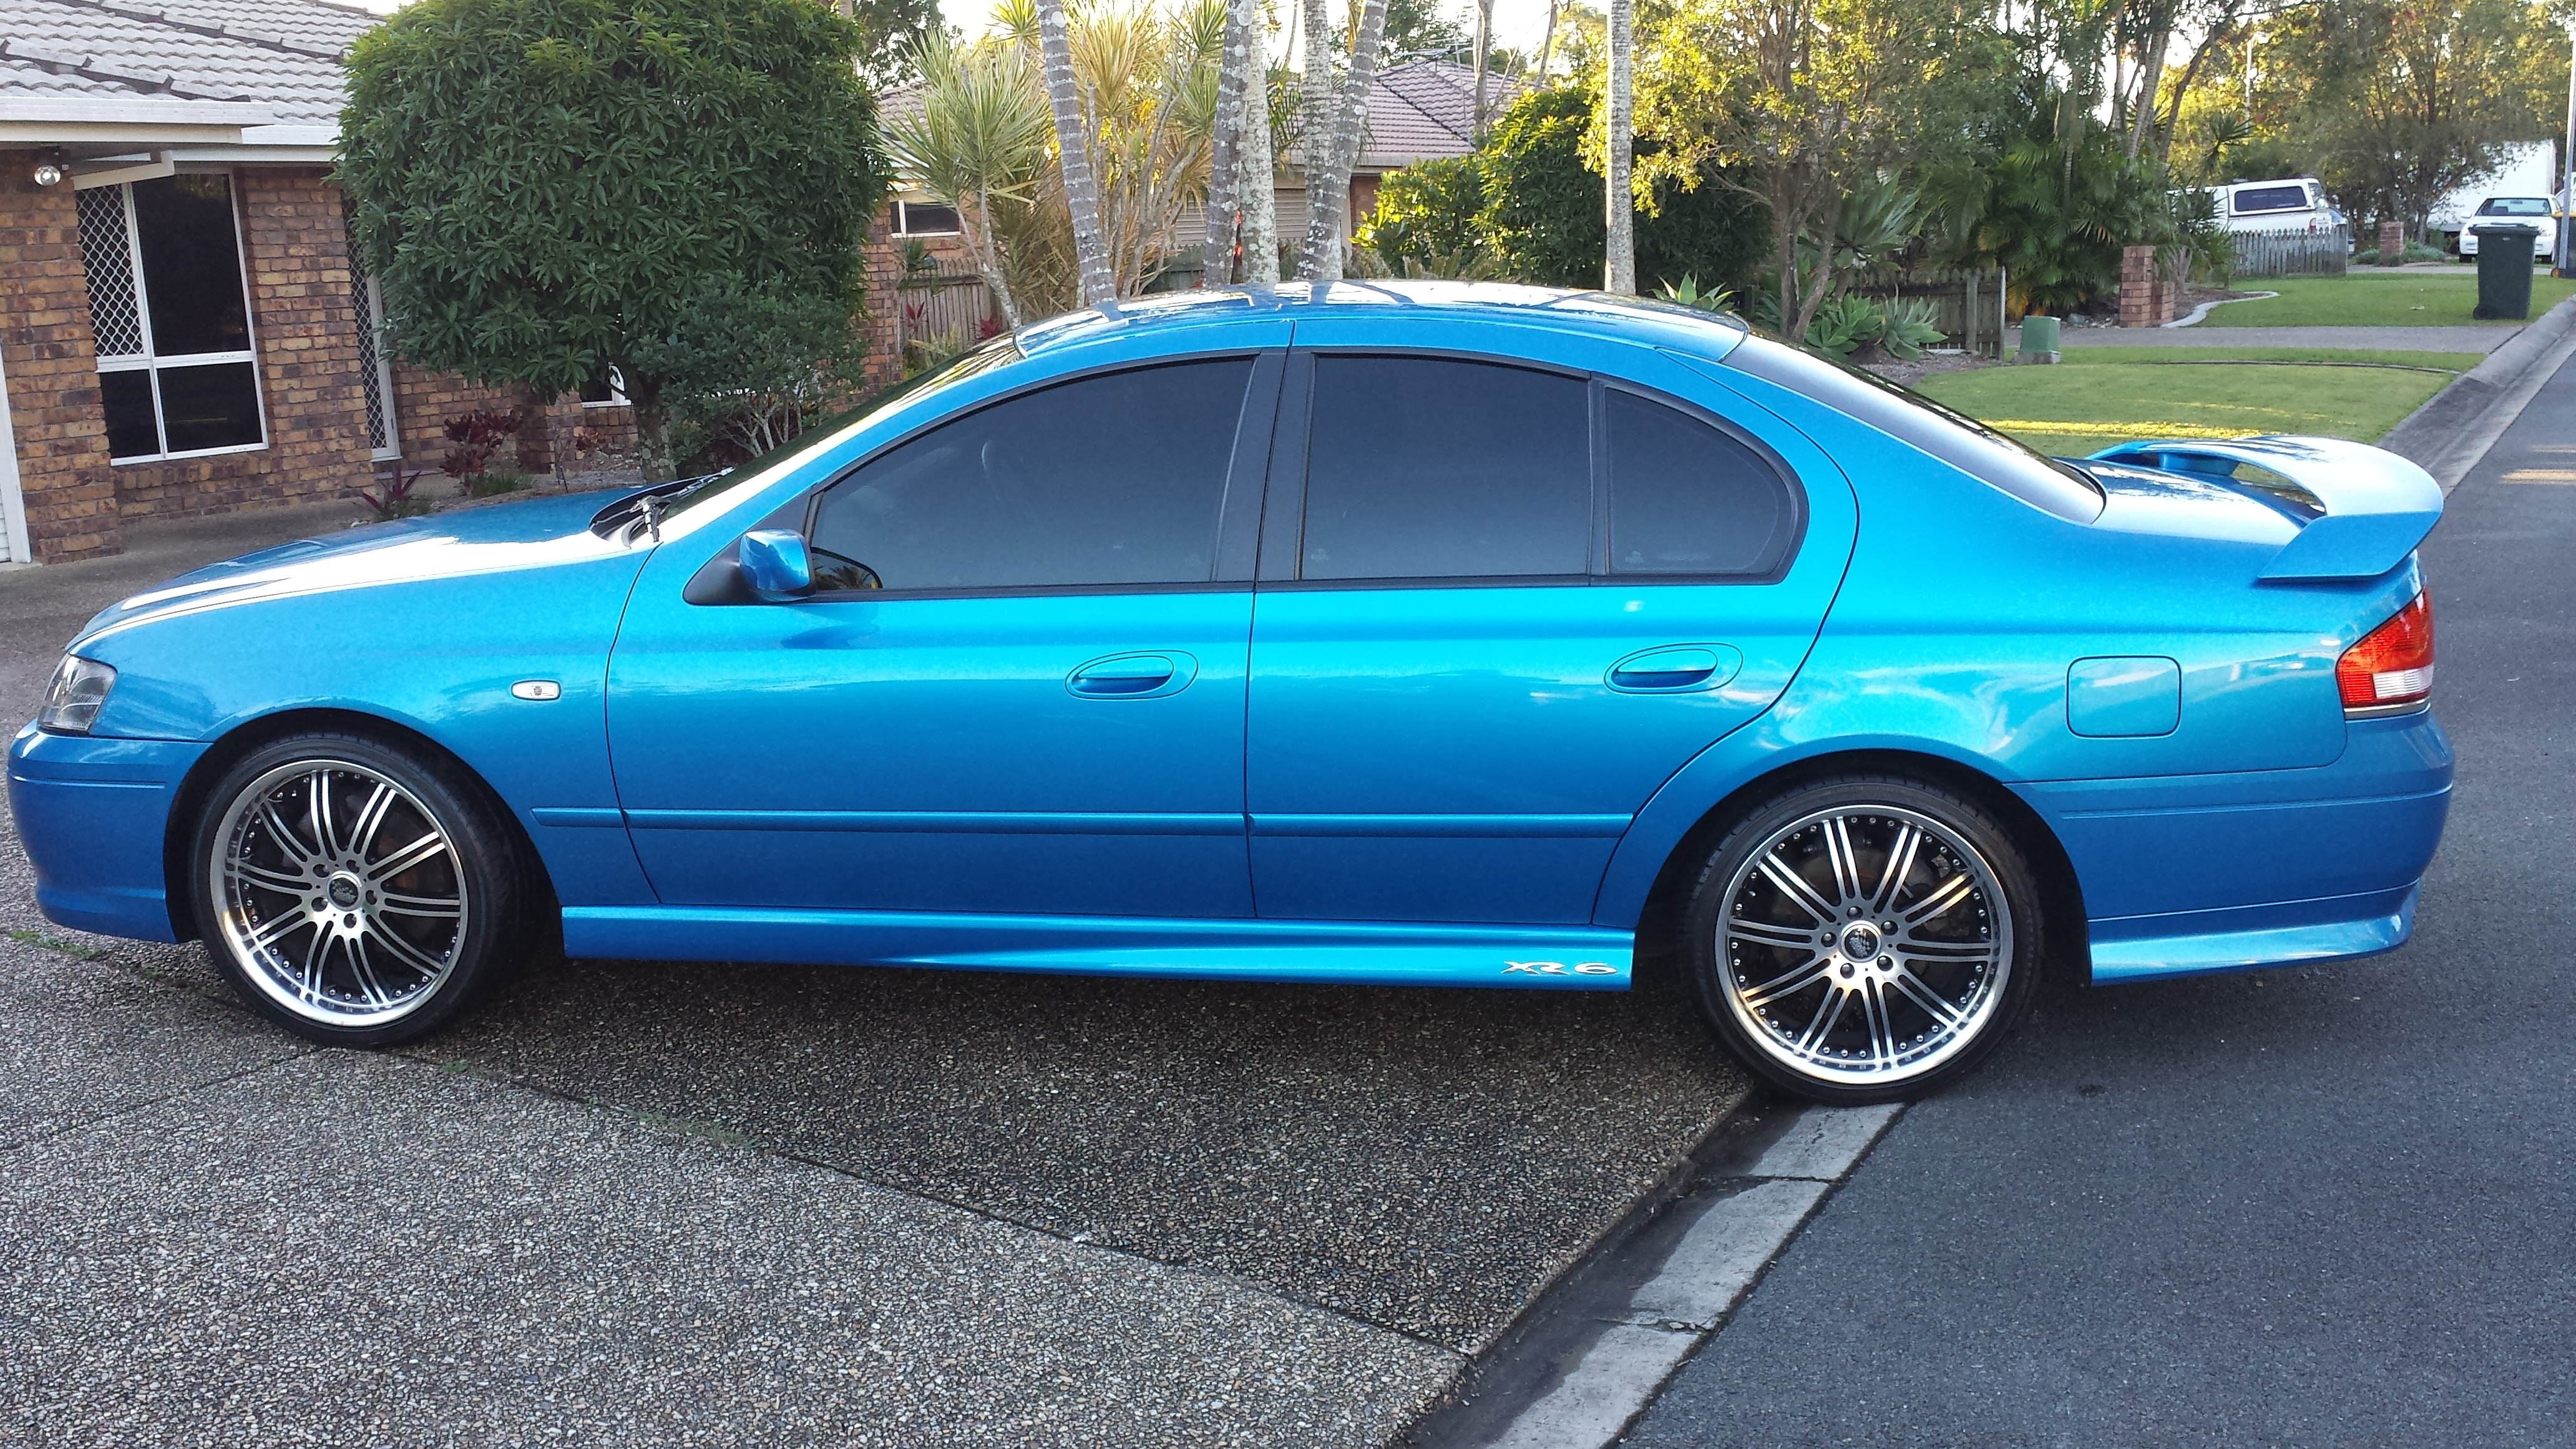 xr6 turbo manual for sale